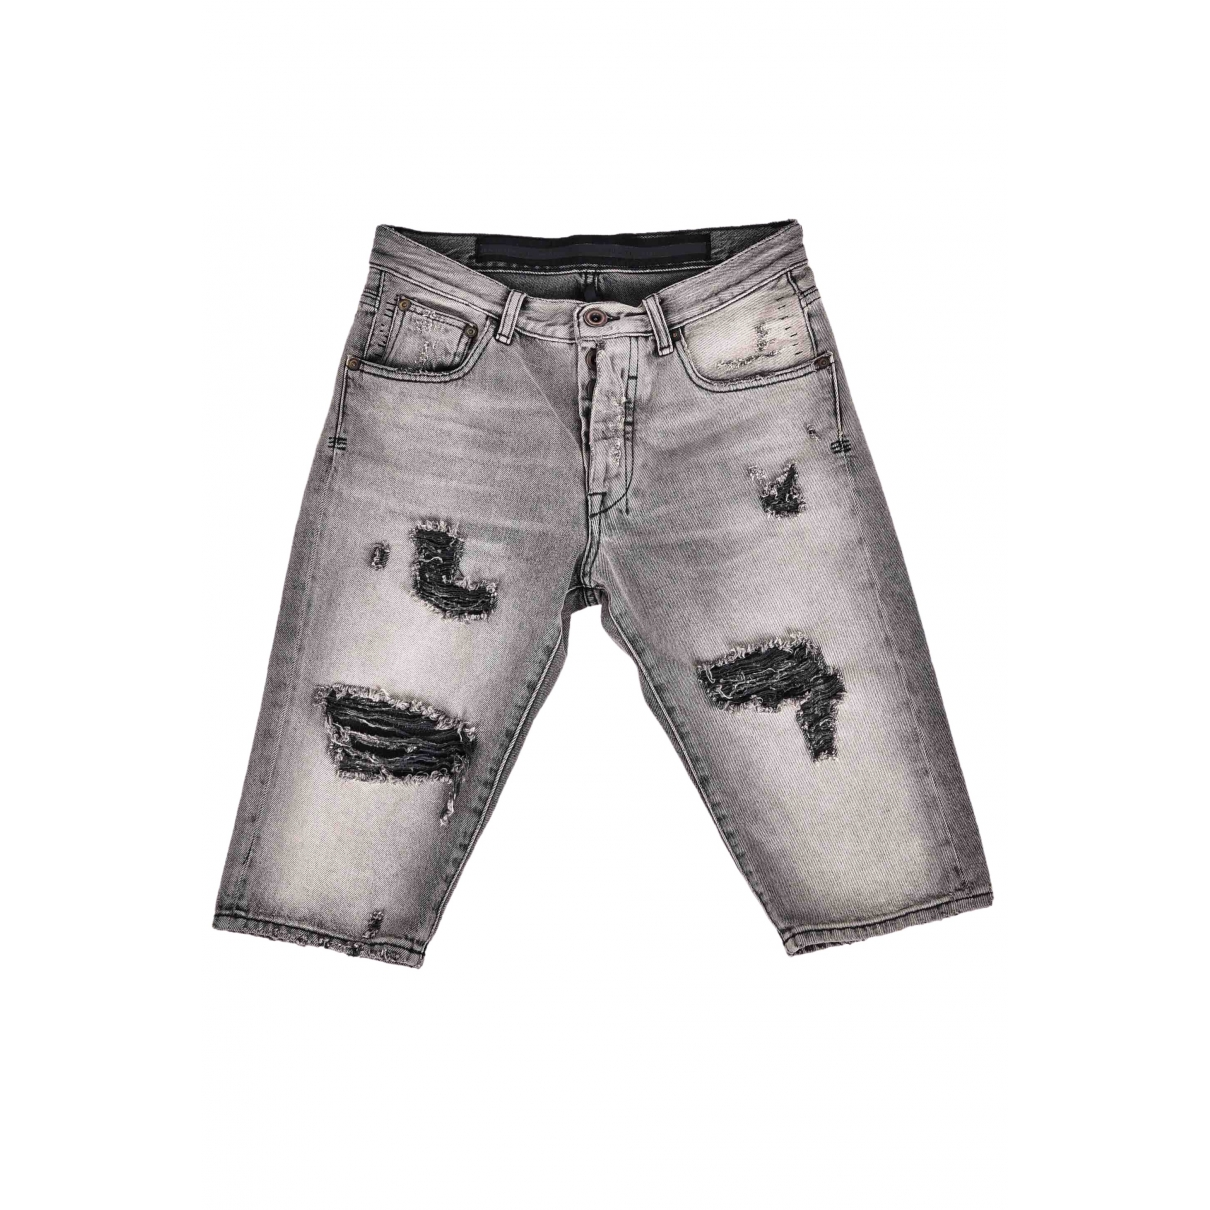 Unravel Project \N Shorts in  Grau Denim - Jeans